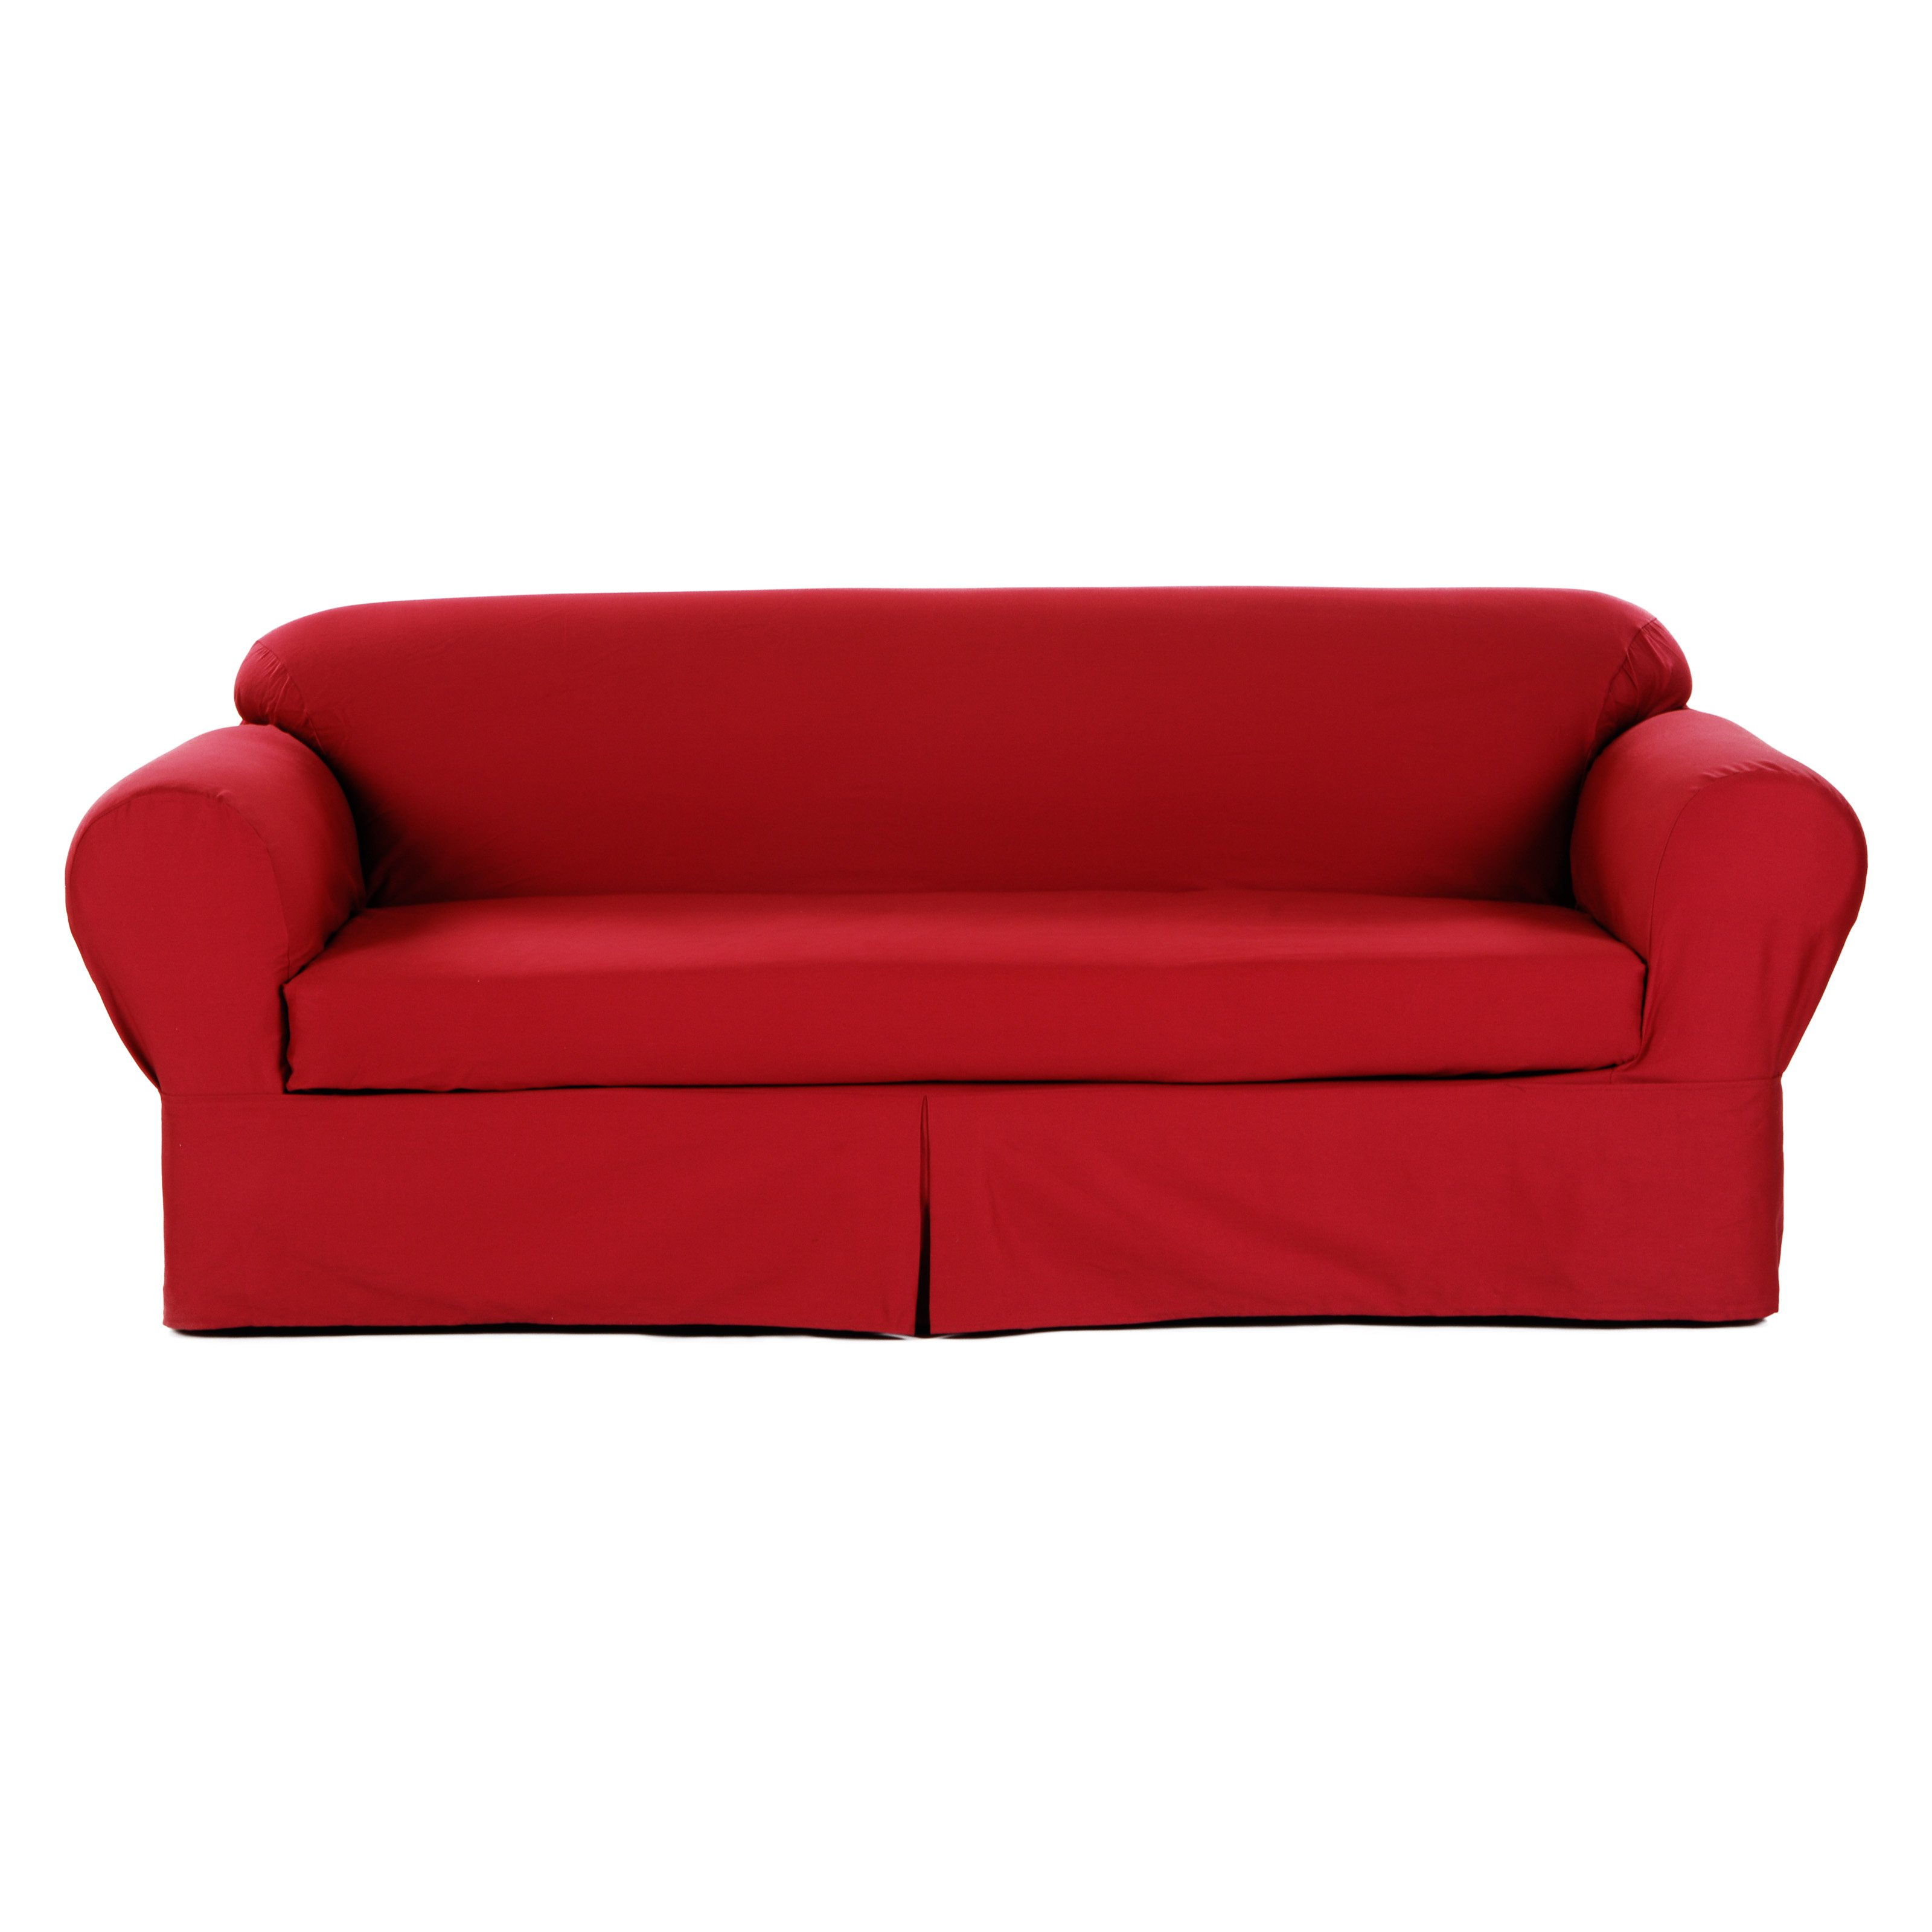 T shaped sofa covers luxury chaise lounge sofa covers interior thesofa Cover for loveseat